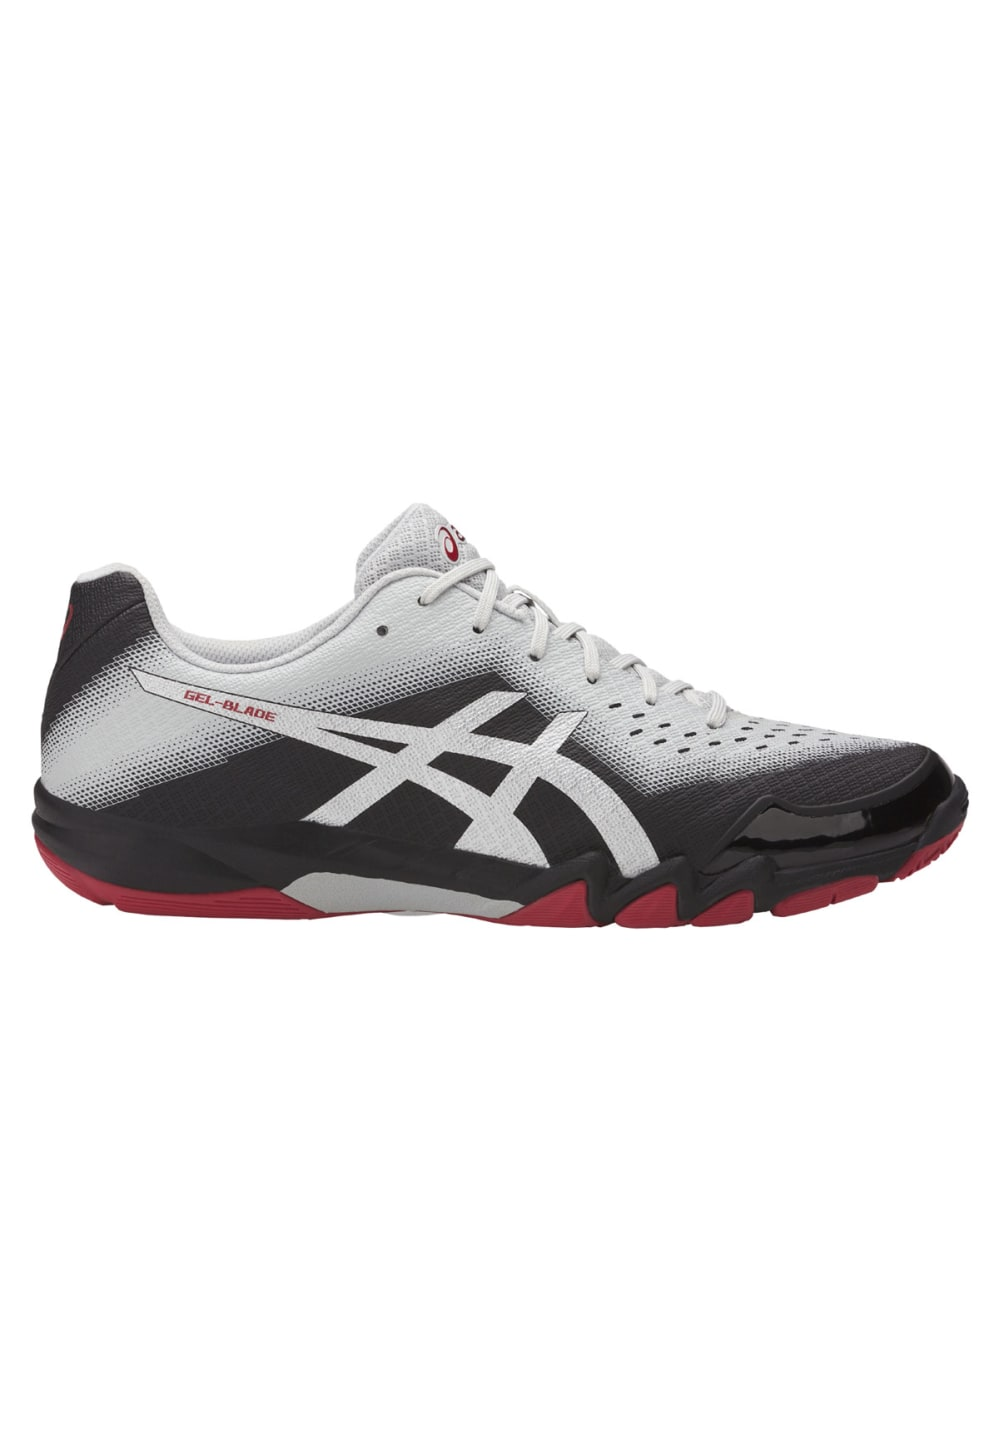 ASICS GEL-Blade 6 - Indoor shoes for Men - Grey  b4e9ba5ed76a